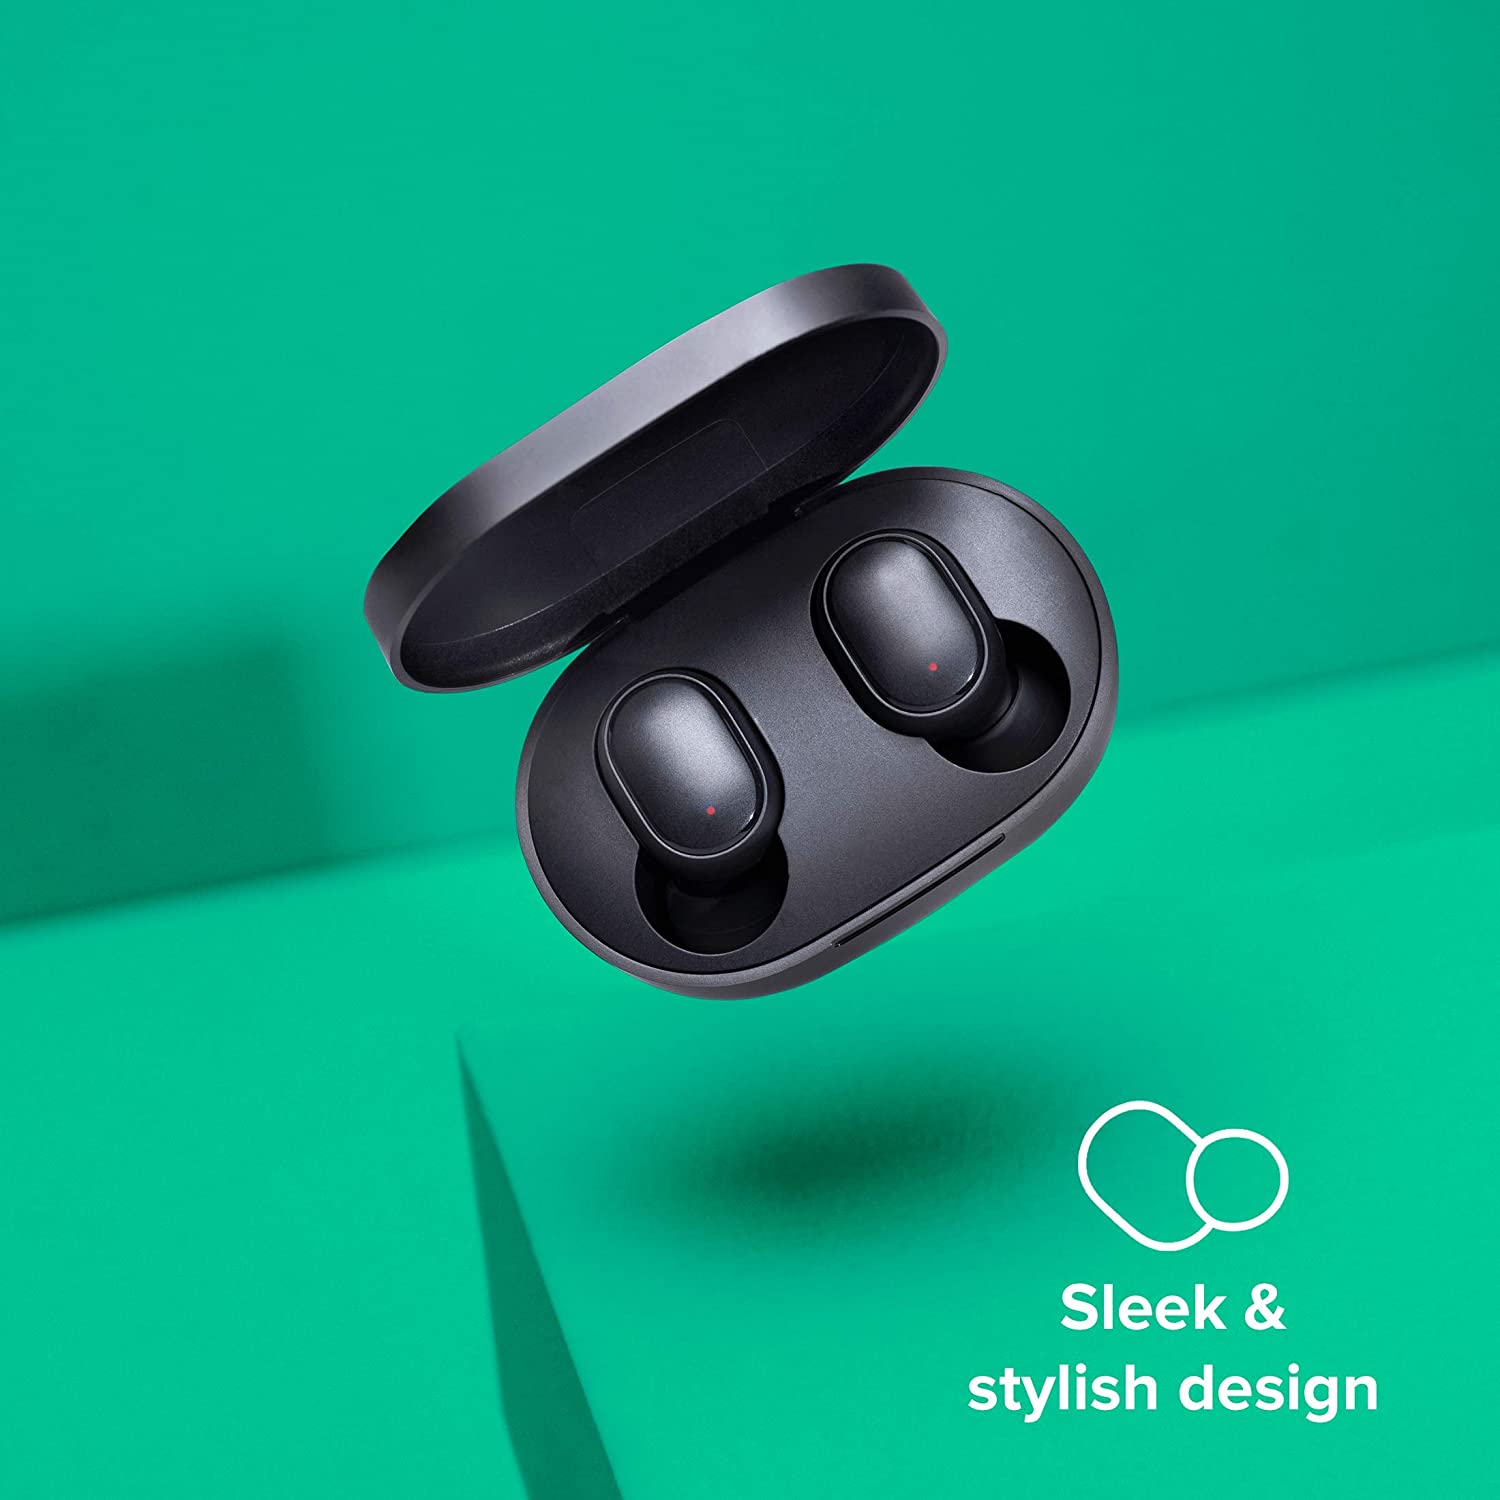 Redmi Earbuds S, Punchier Sound,Up to 12 Hours of Playback time, IPX4 Sweat & Splash Proof& DSP Environmental Noise Cancellation